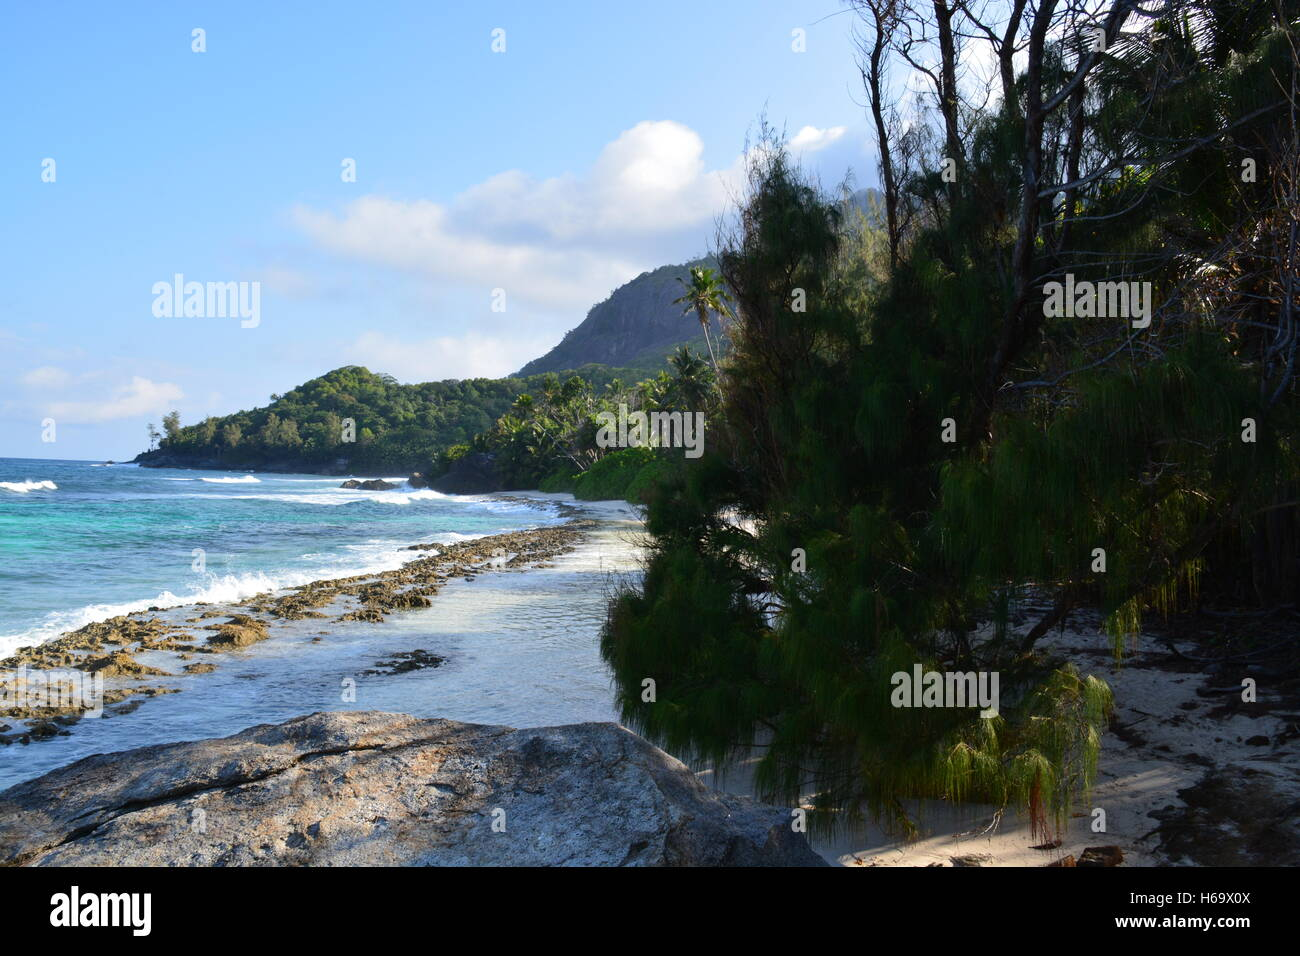 Seychelles forest blue ocean waves clear sky Stock Photo